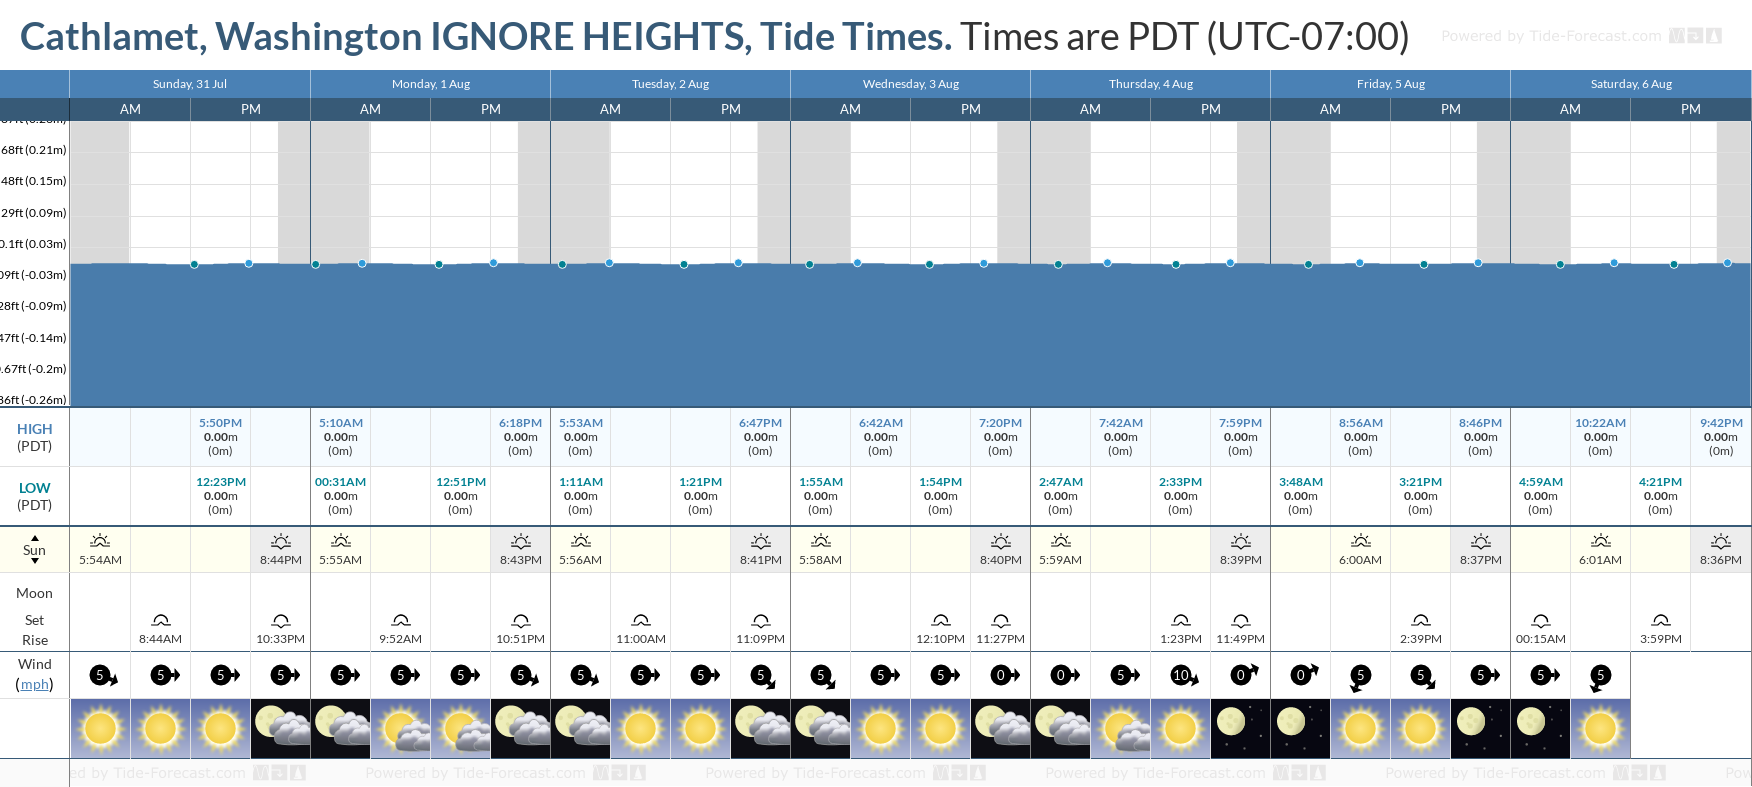 Cathlamet, Washington IGNORE HEIGHTS Tide Chart including high and low tide tide times for the next 7 days